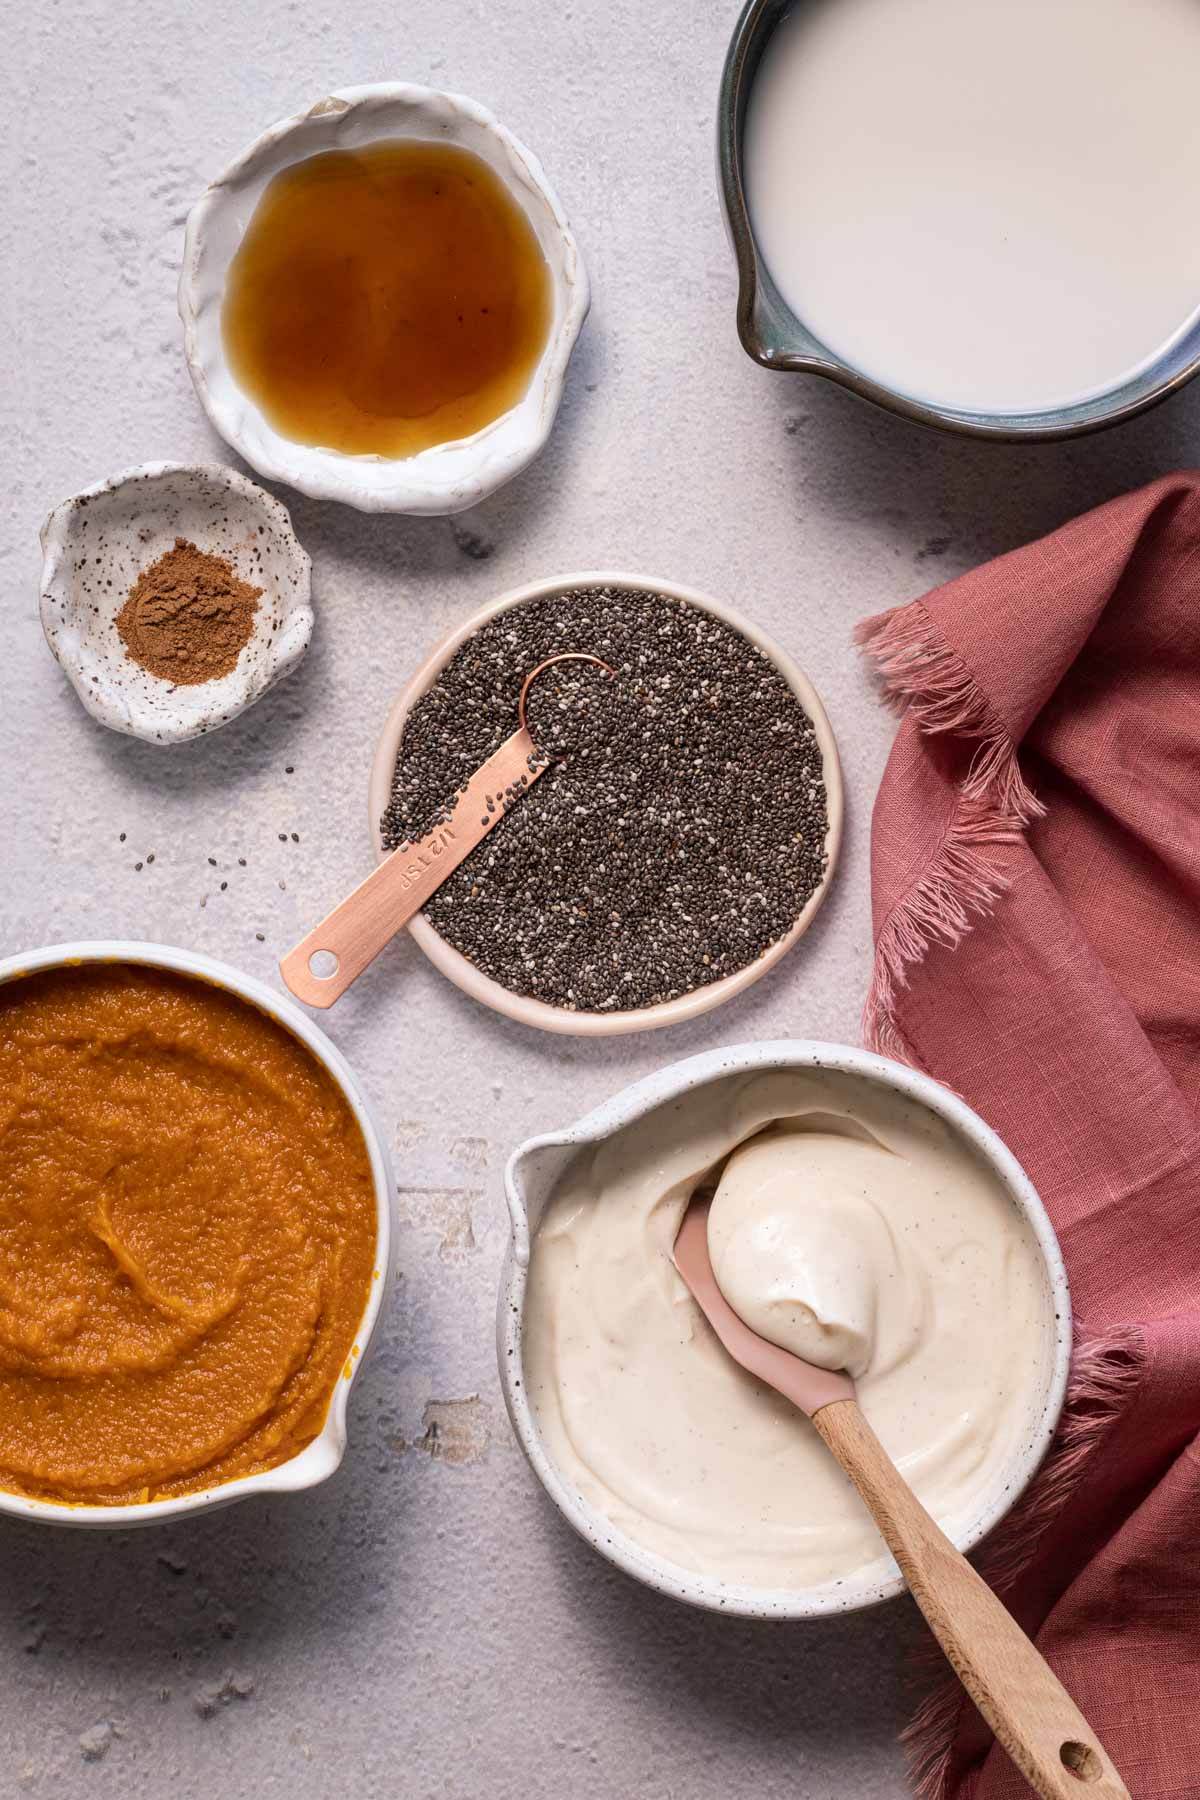 Ingredients for pumpkin chia pudding in bowls